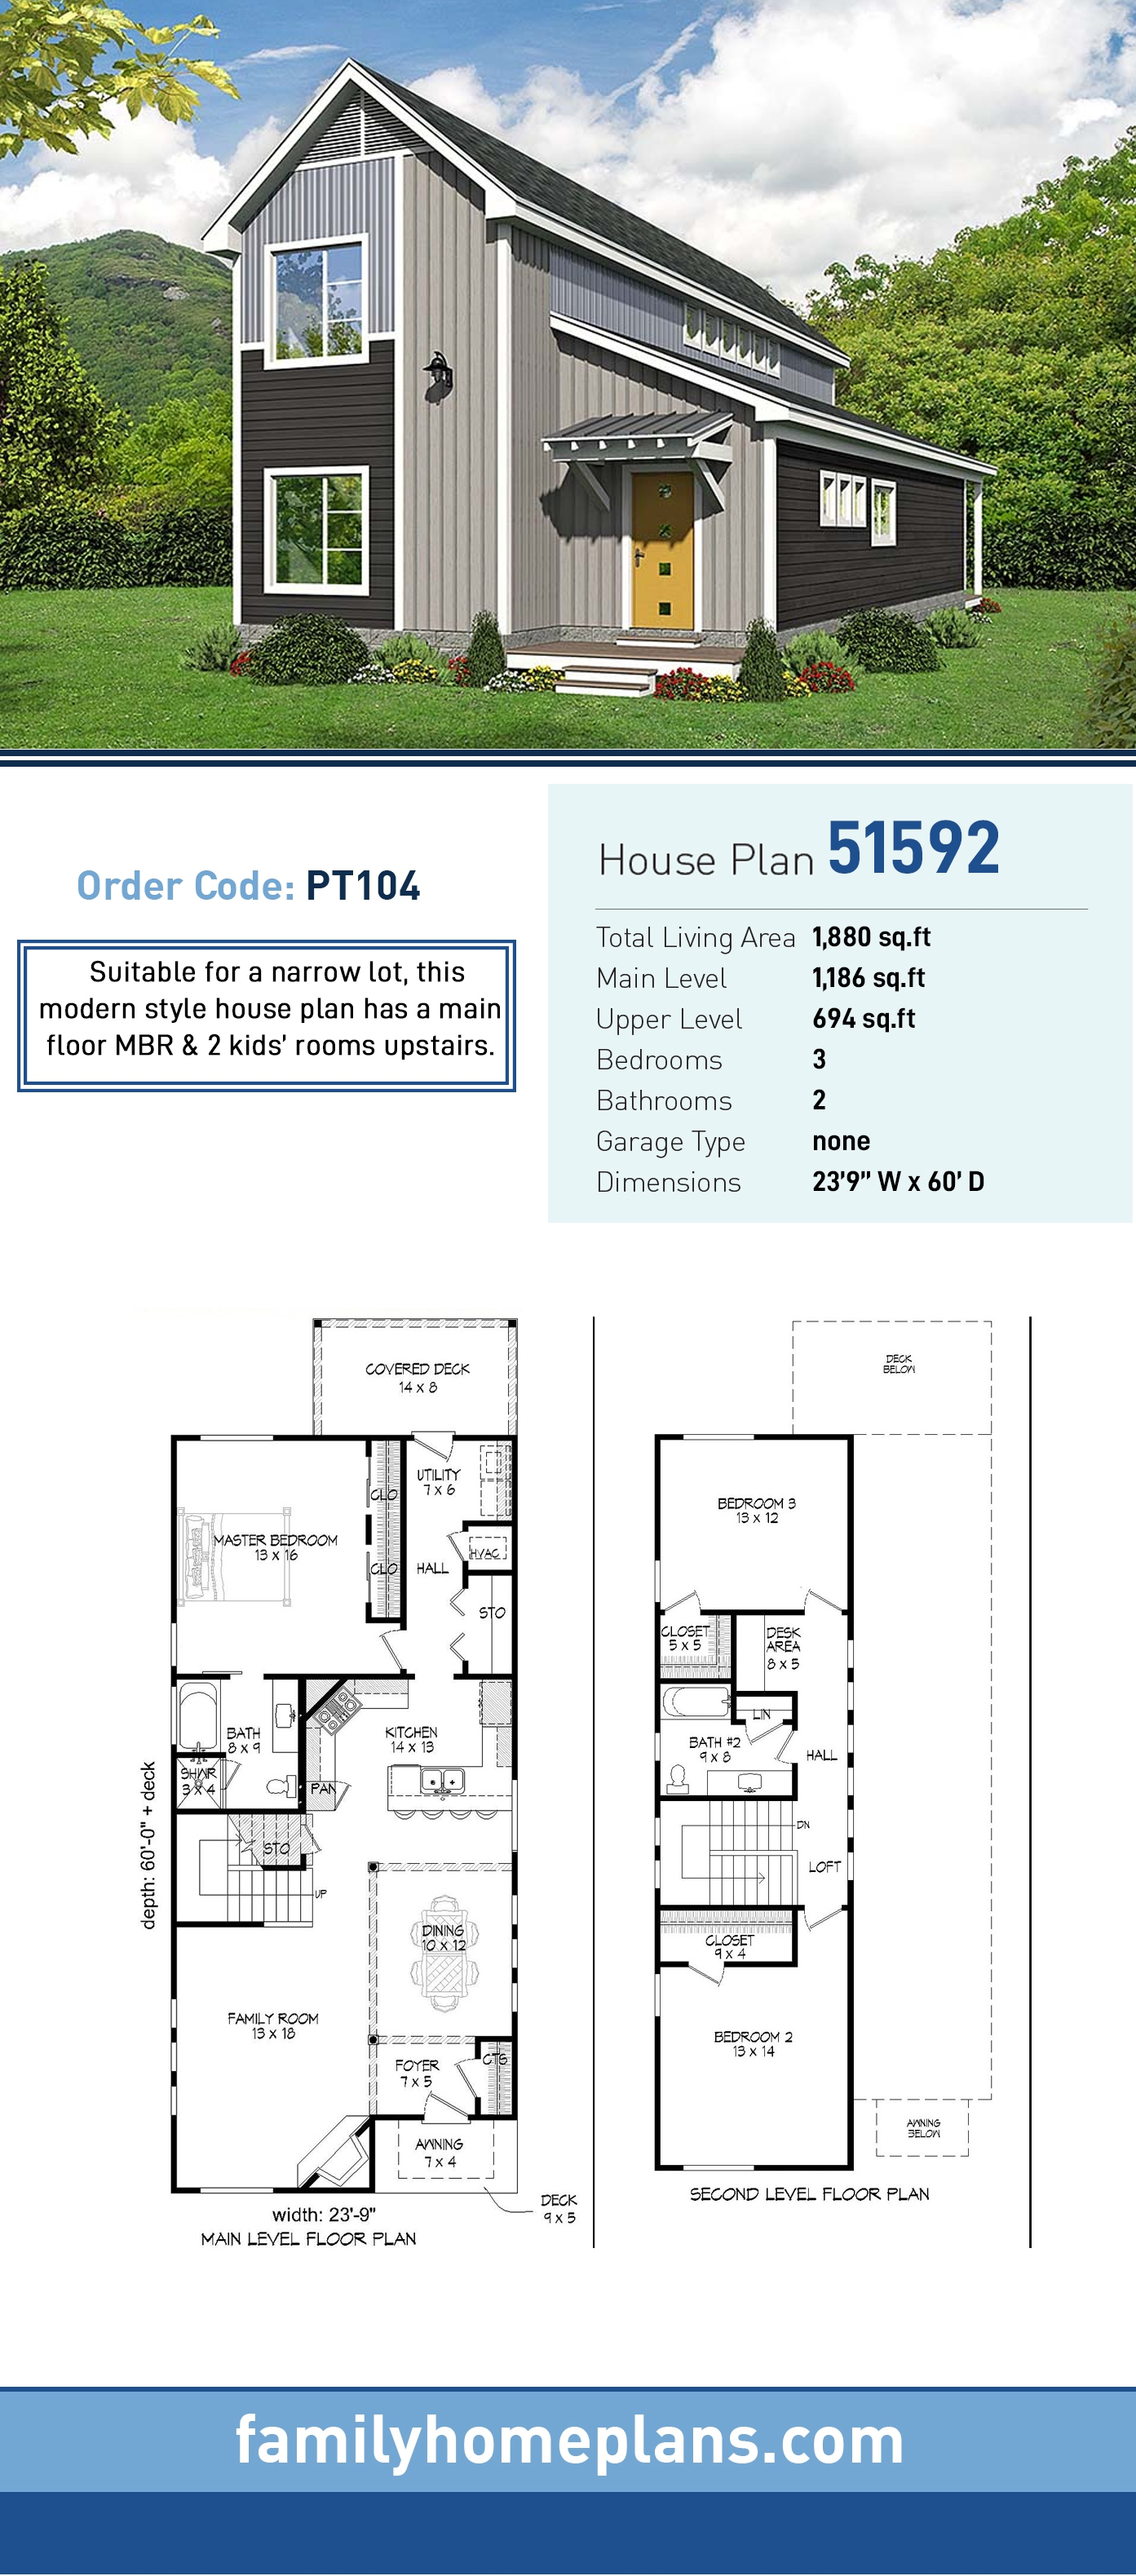 Cabin, Country, Traditional House Plan 51592 with 3 Beds, 2 Baths